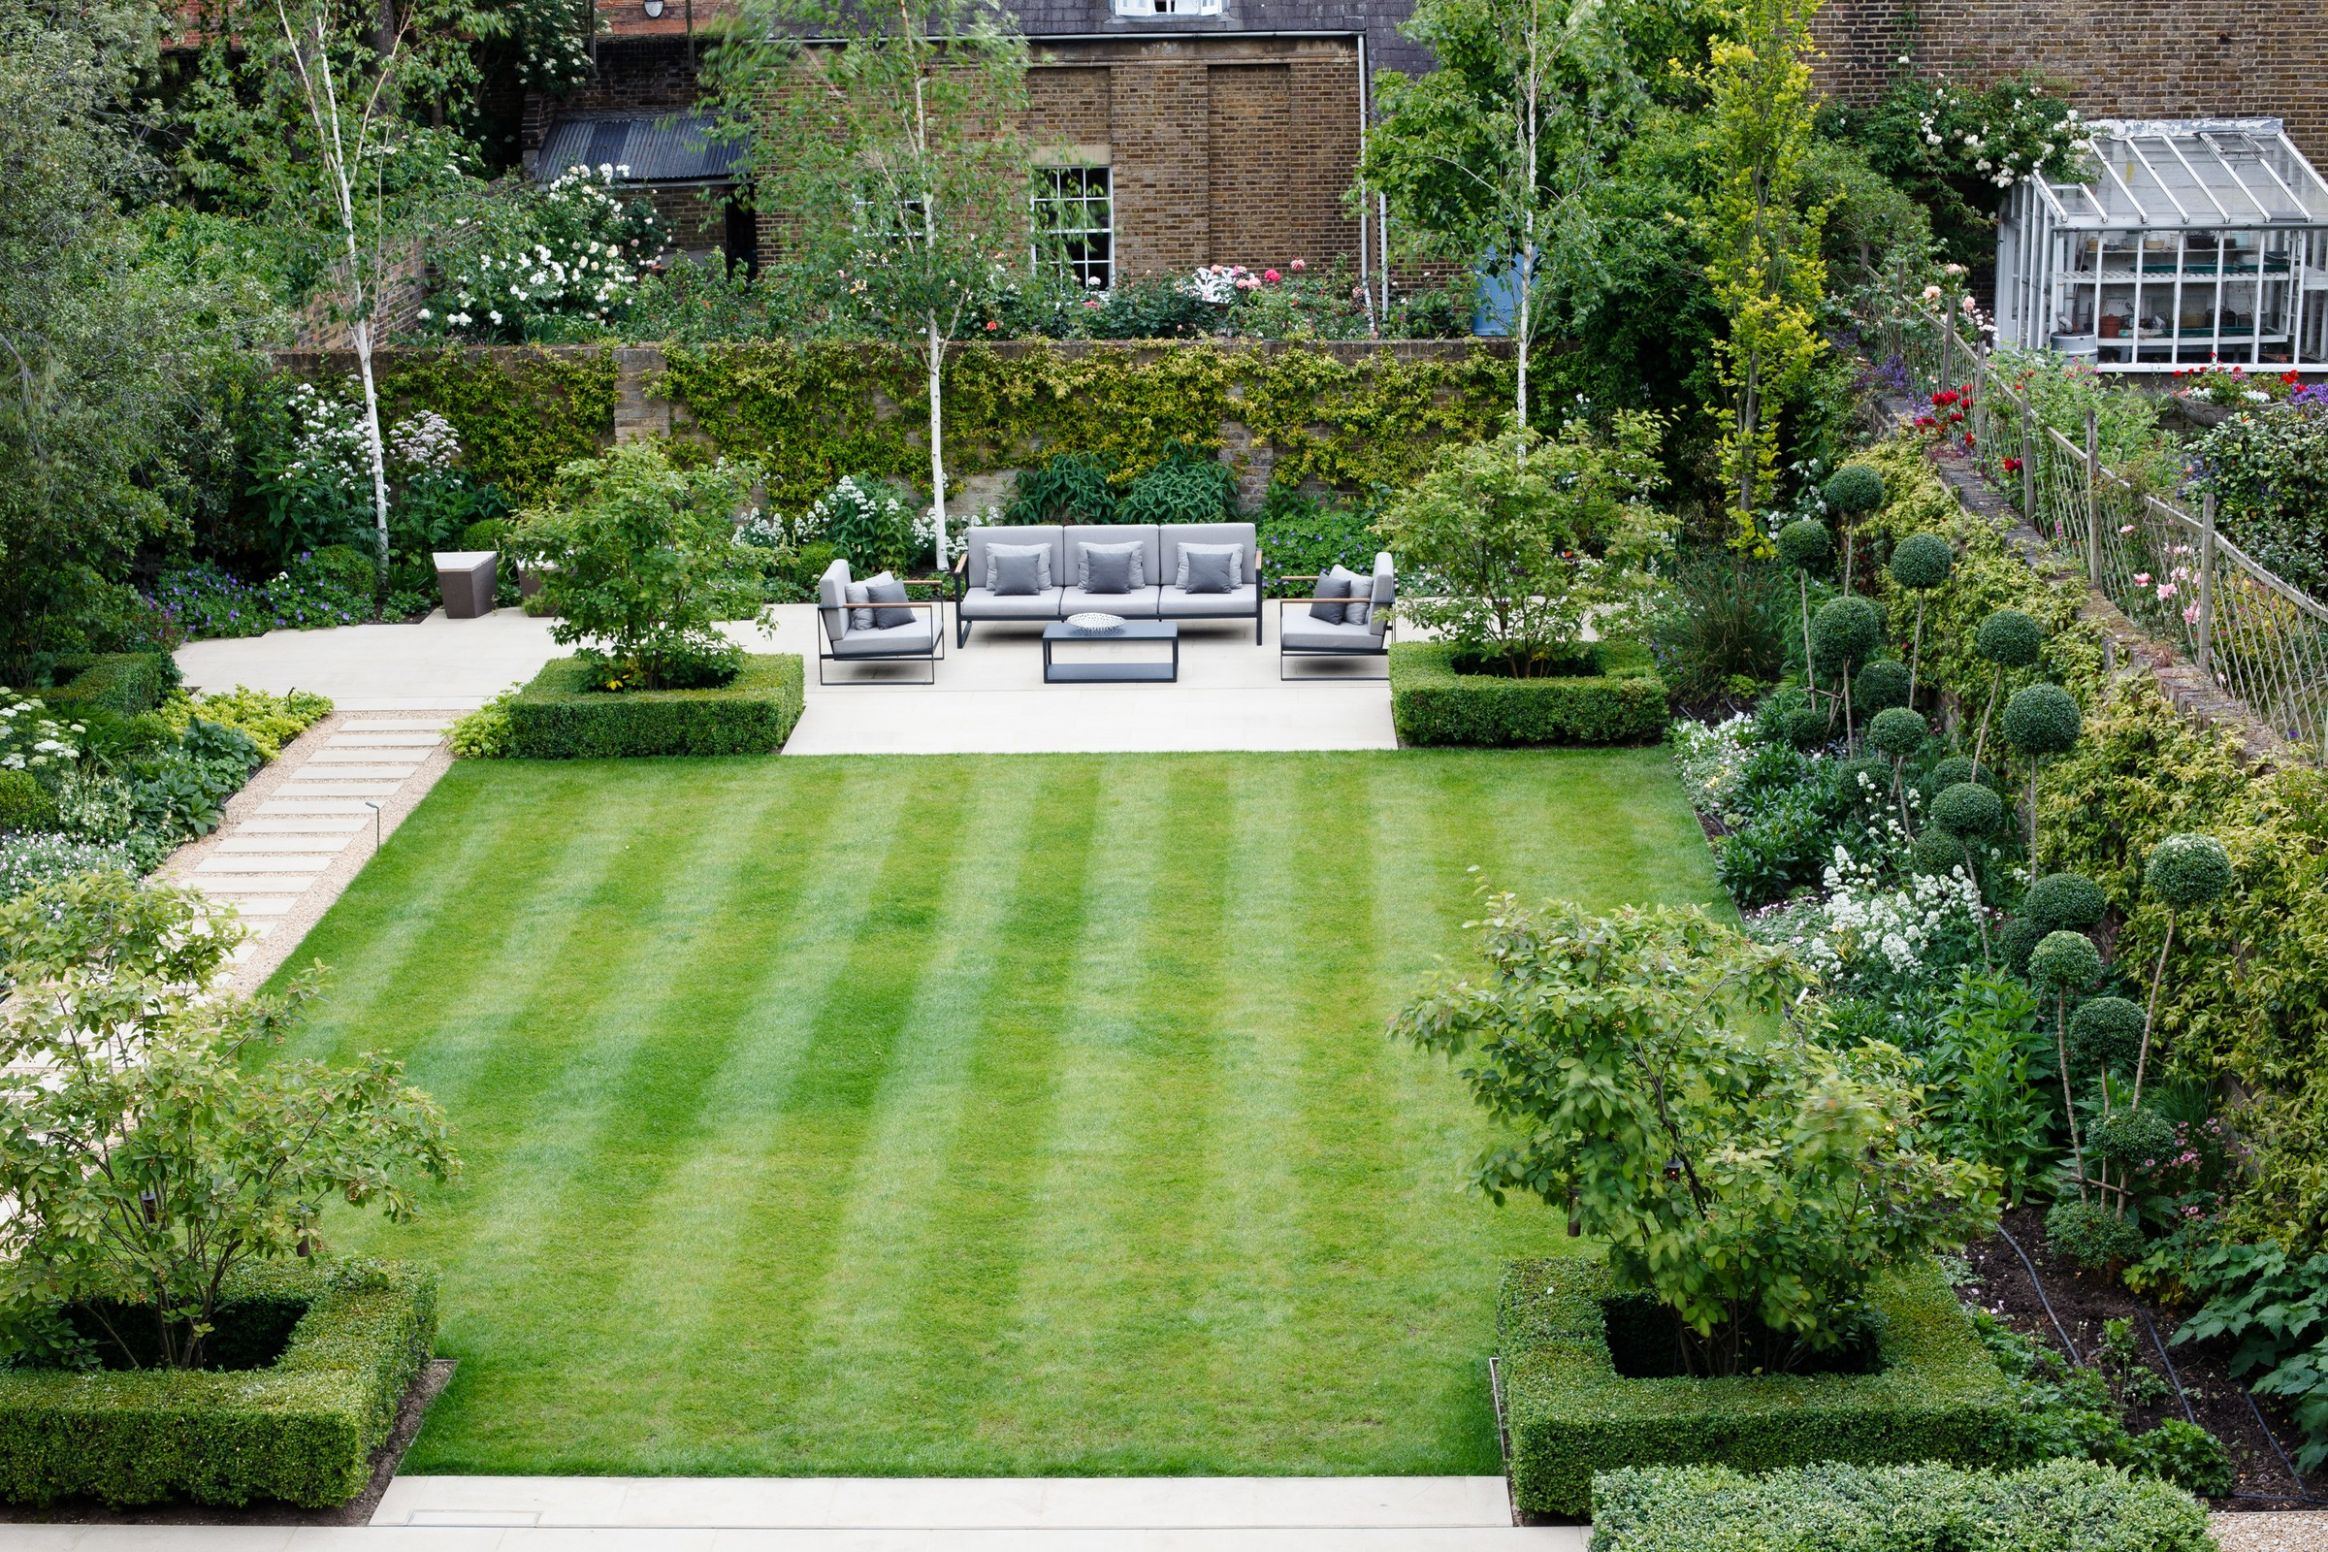 Formal Square Lawn - Randle Siddeley